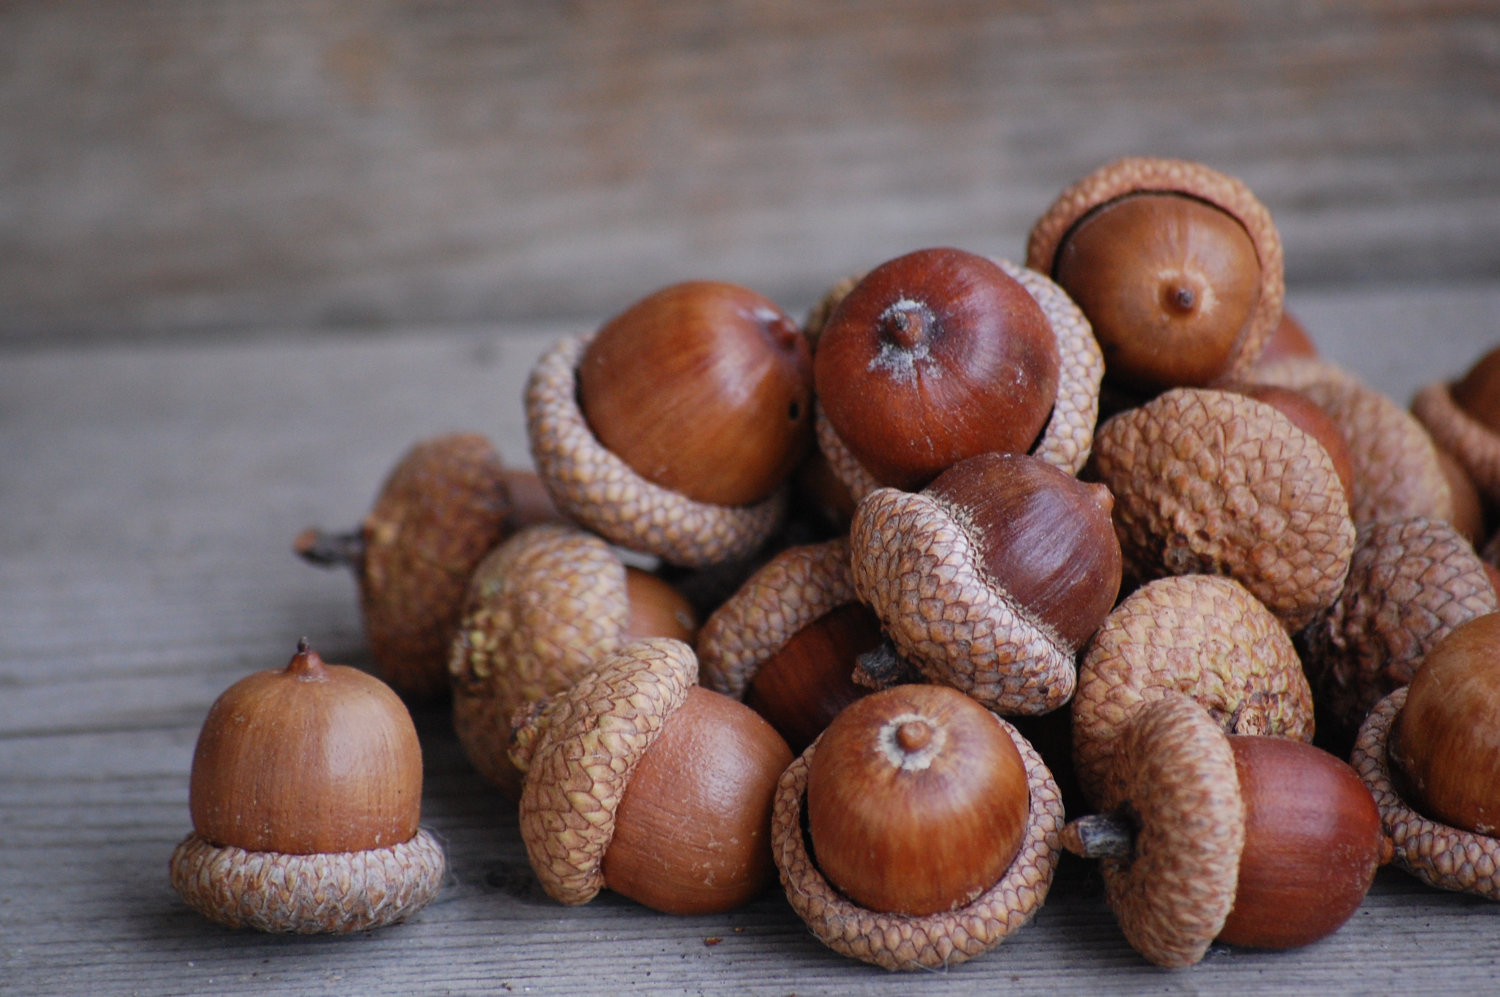 temperate climate permaculture how to eat acorns